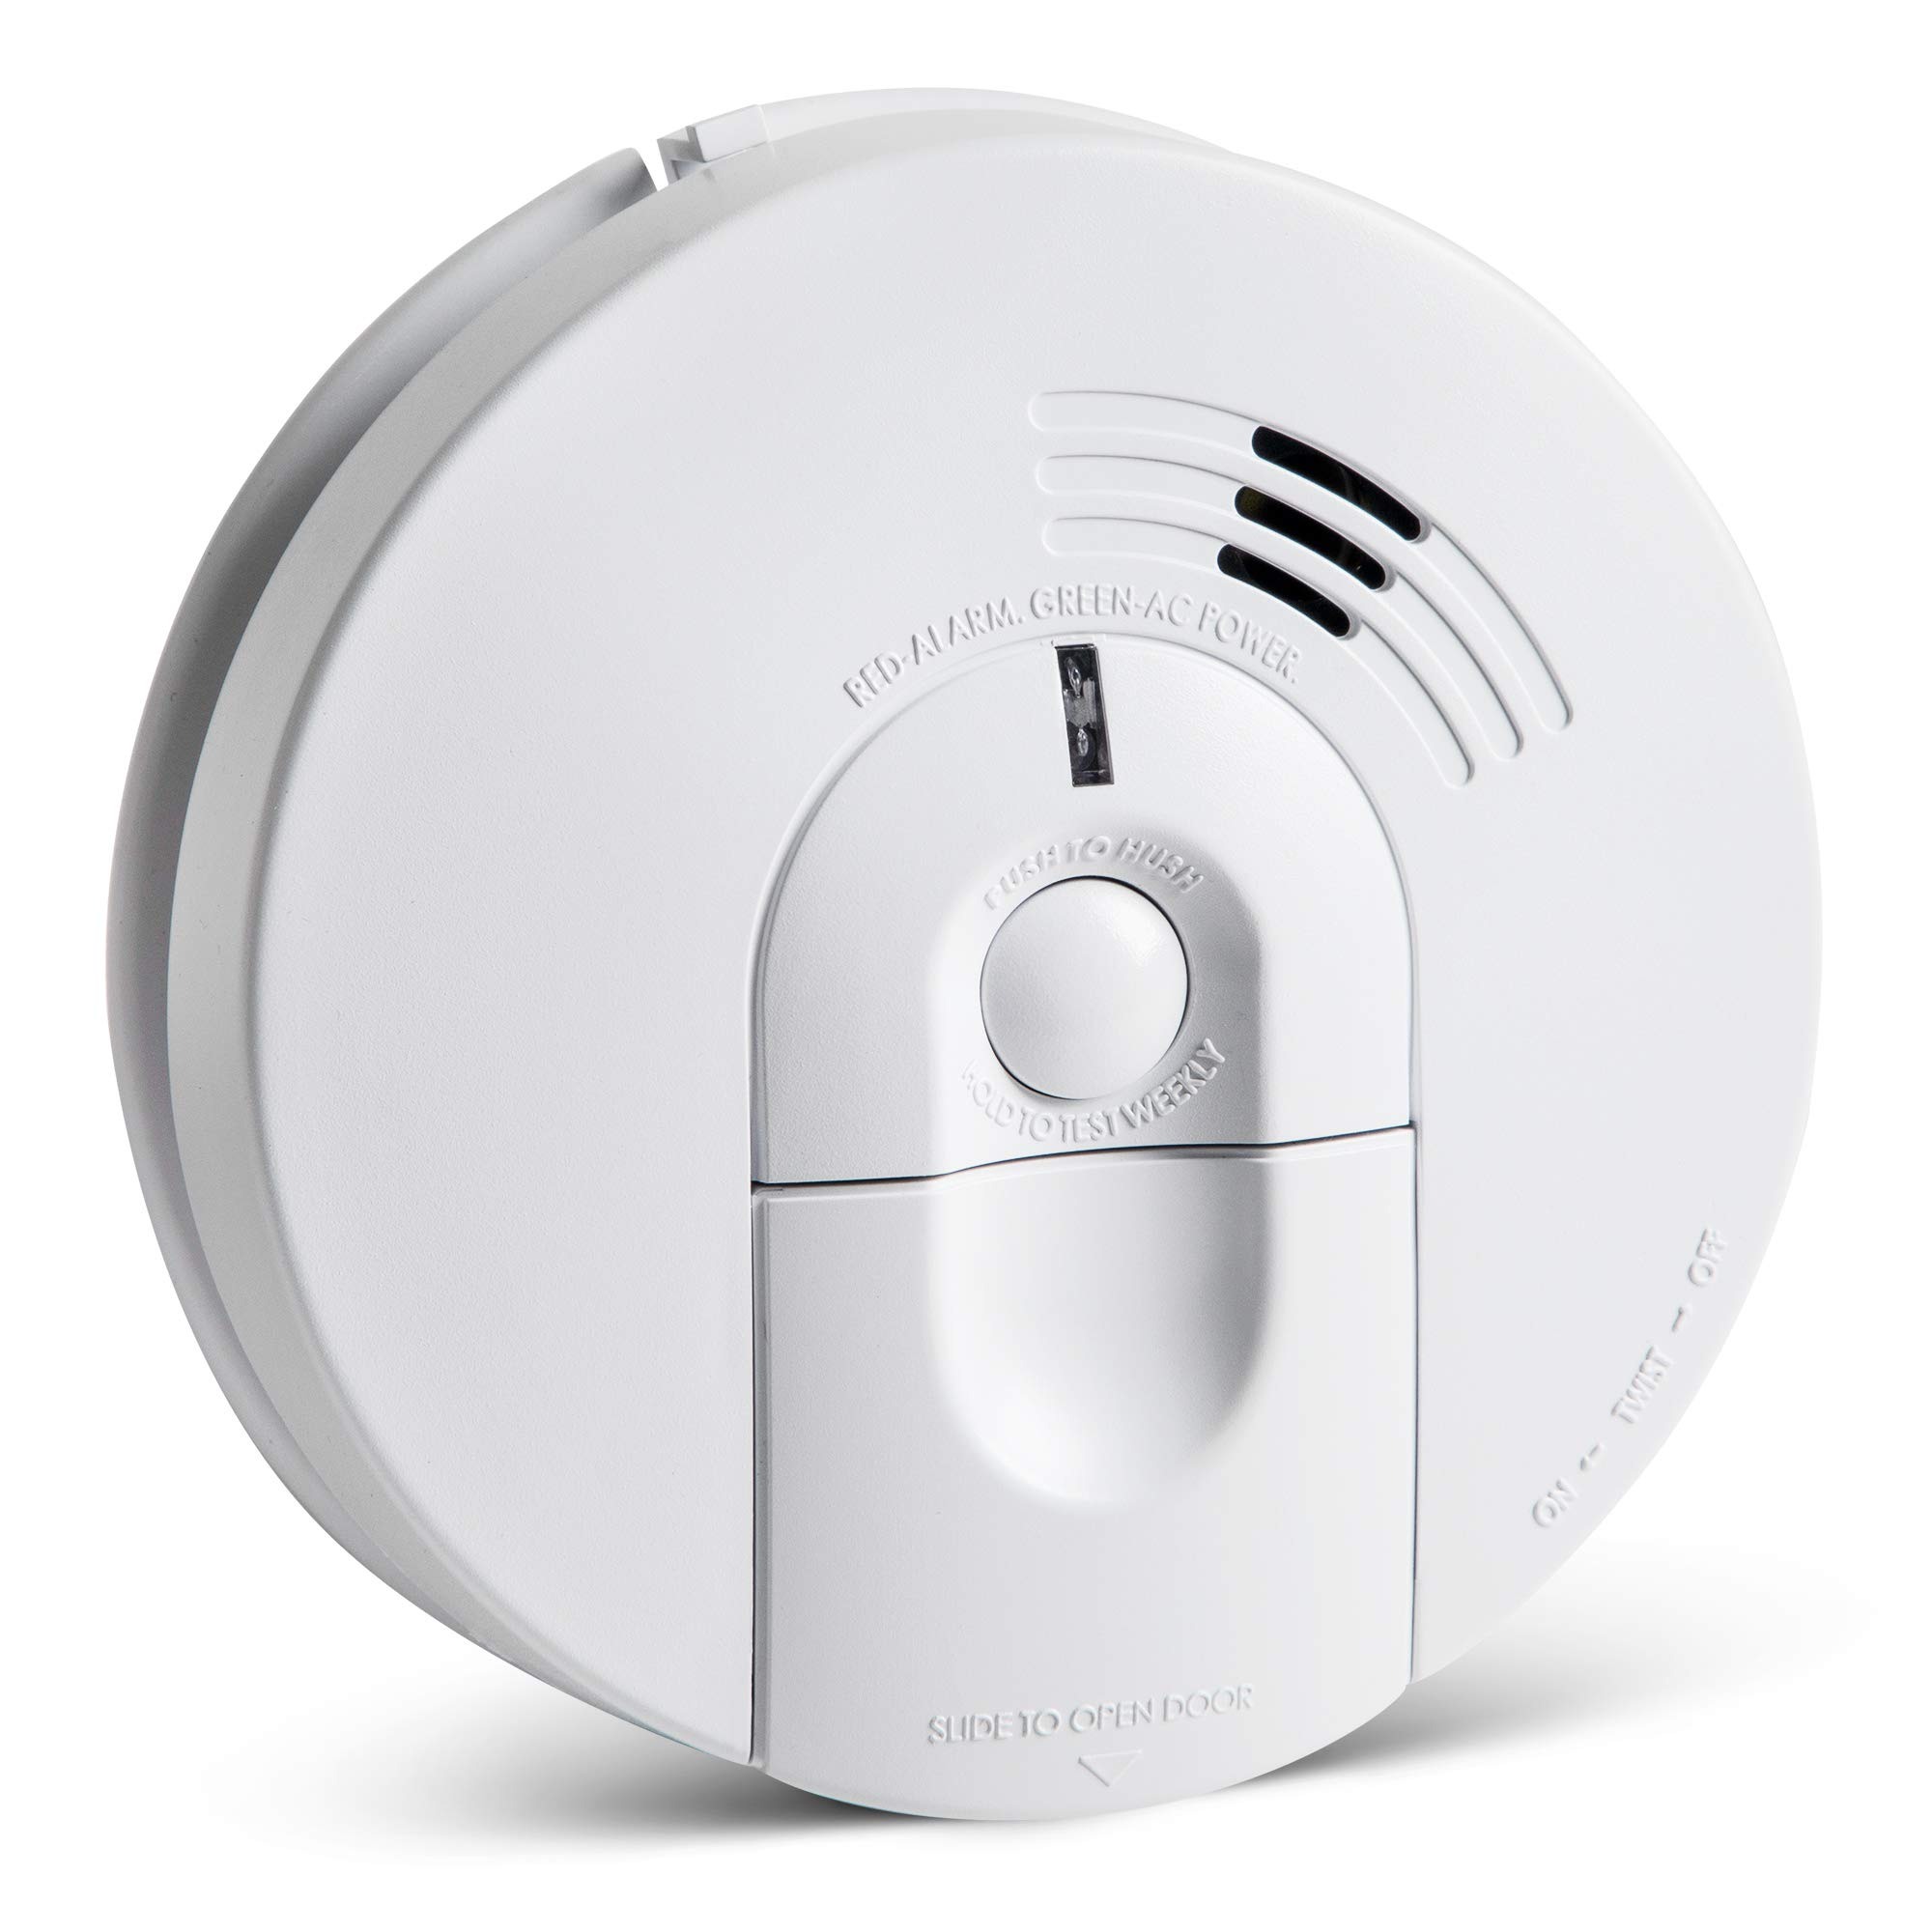 Kidde 21026063 AC Hardwired Smoke Detector Alarm with 9V Back up and Front Load Battery Door